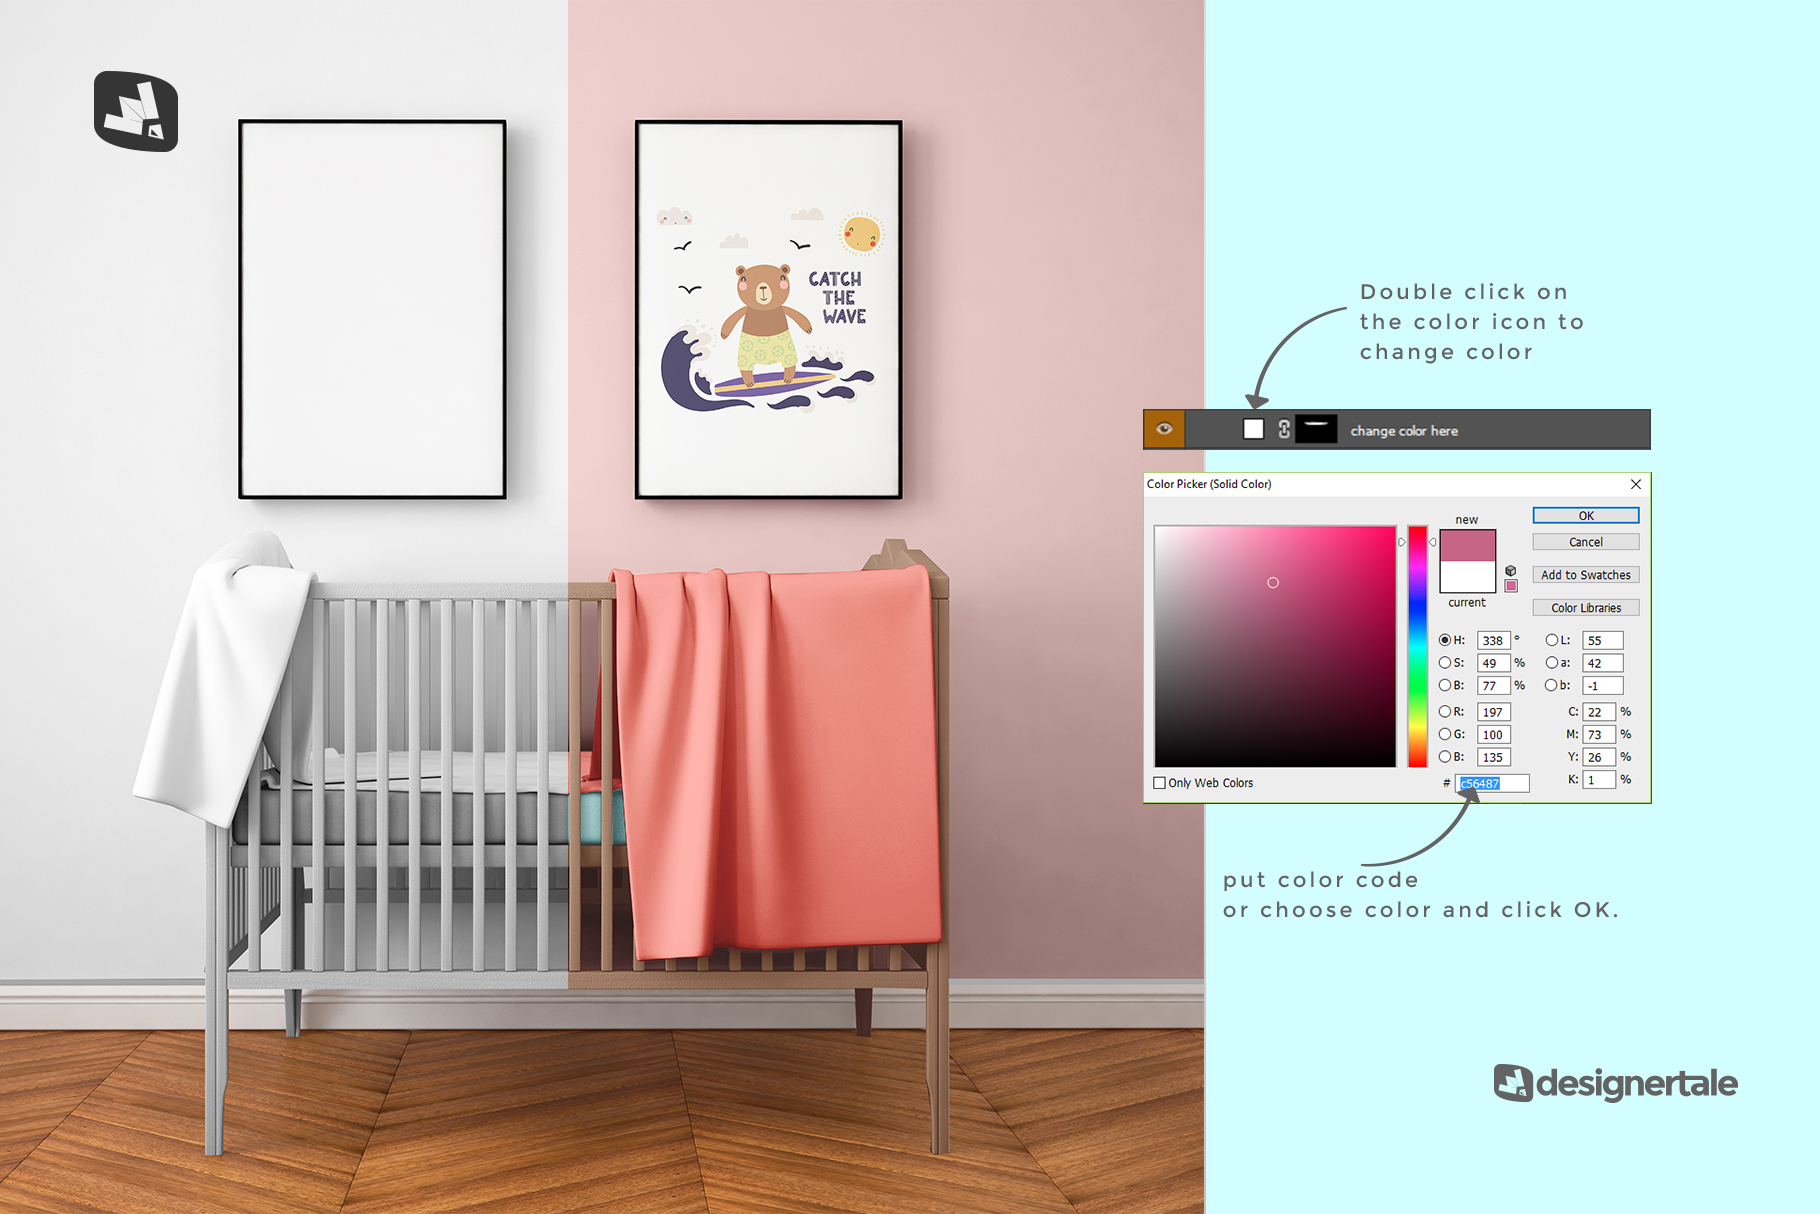 how to change color of the nursery interior mockup